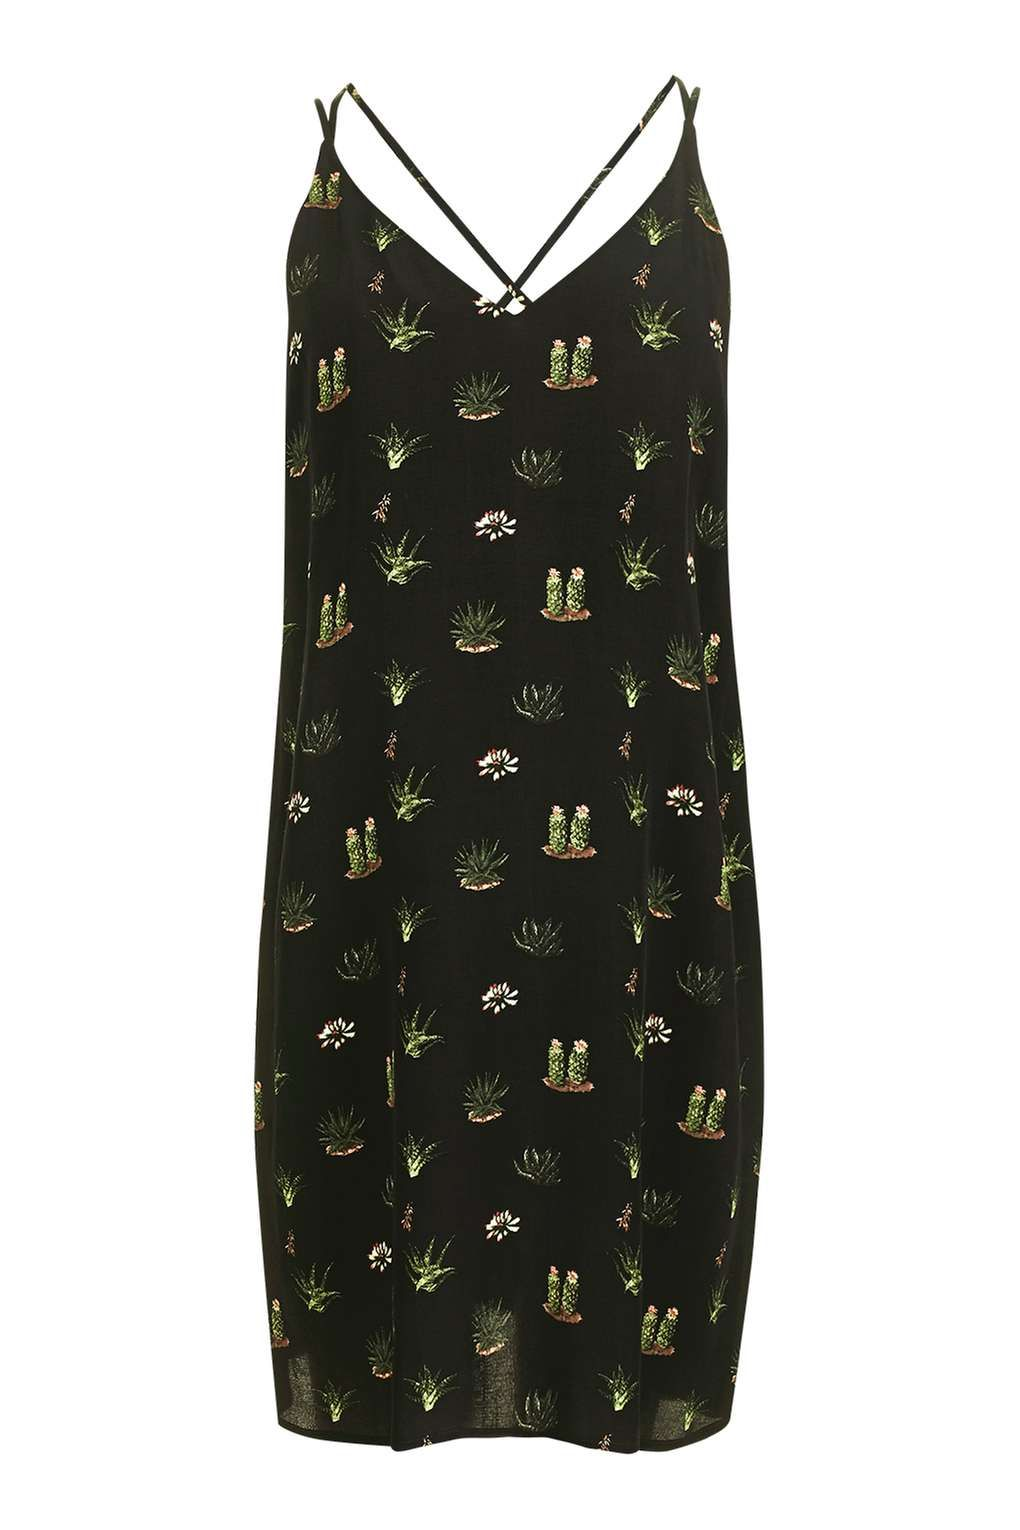 Maternity cactus print slip dress maternity clothing cactus maternity cactus print slip dress maternity clothing ombrellifo Gallery